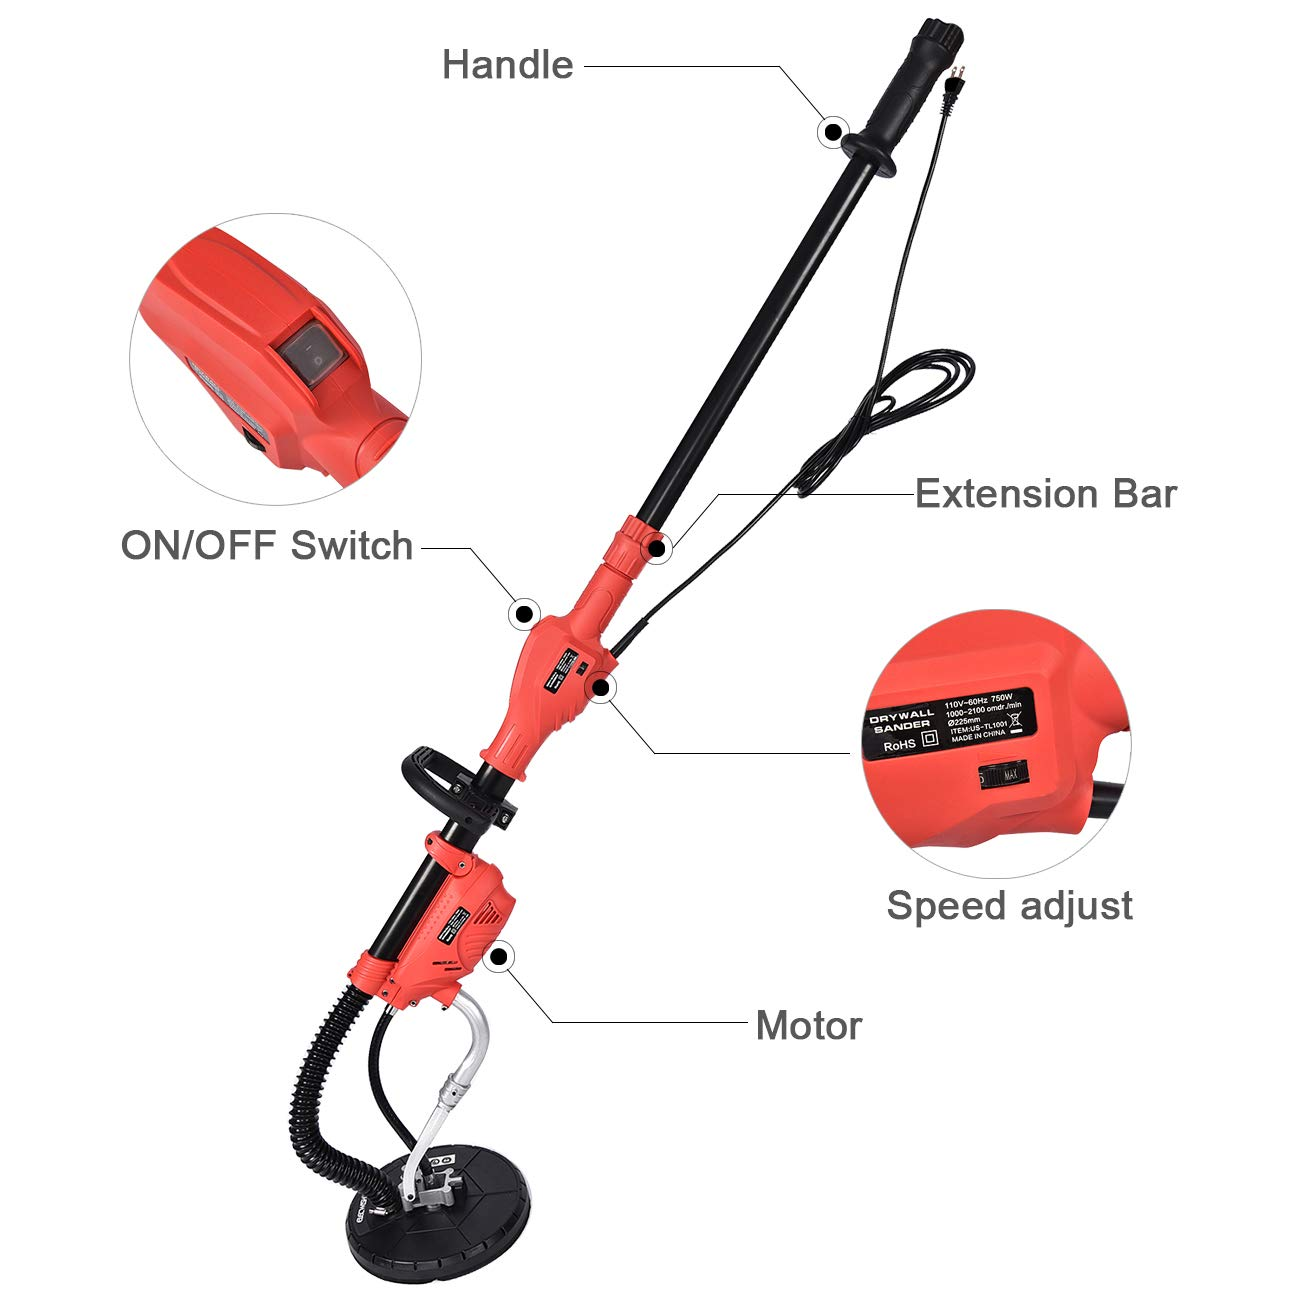 FULLWATT 750W Drywall Sander 6 Variable Speed Drywall Disc Sander w 6 Sand Pads Auto Dust Collection System Electric Sander for Drywall